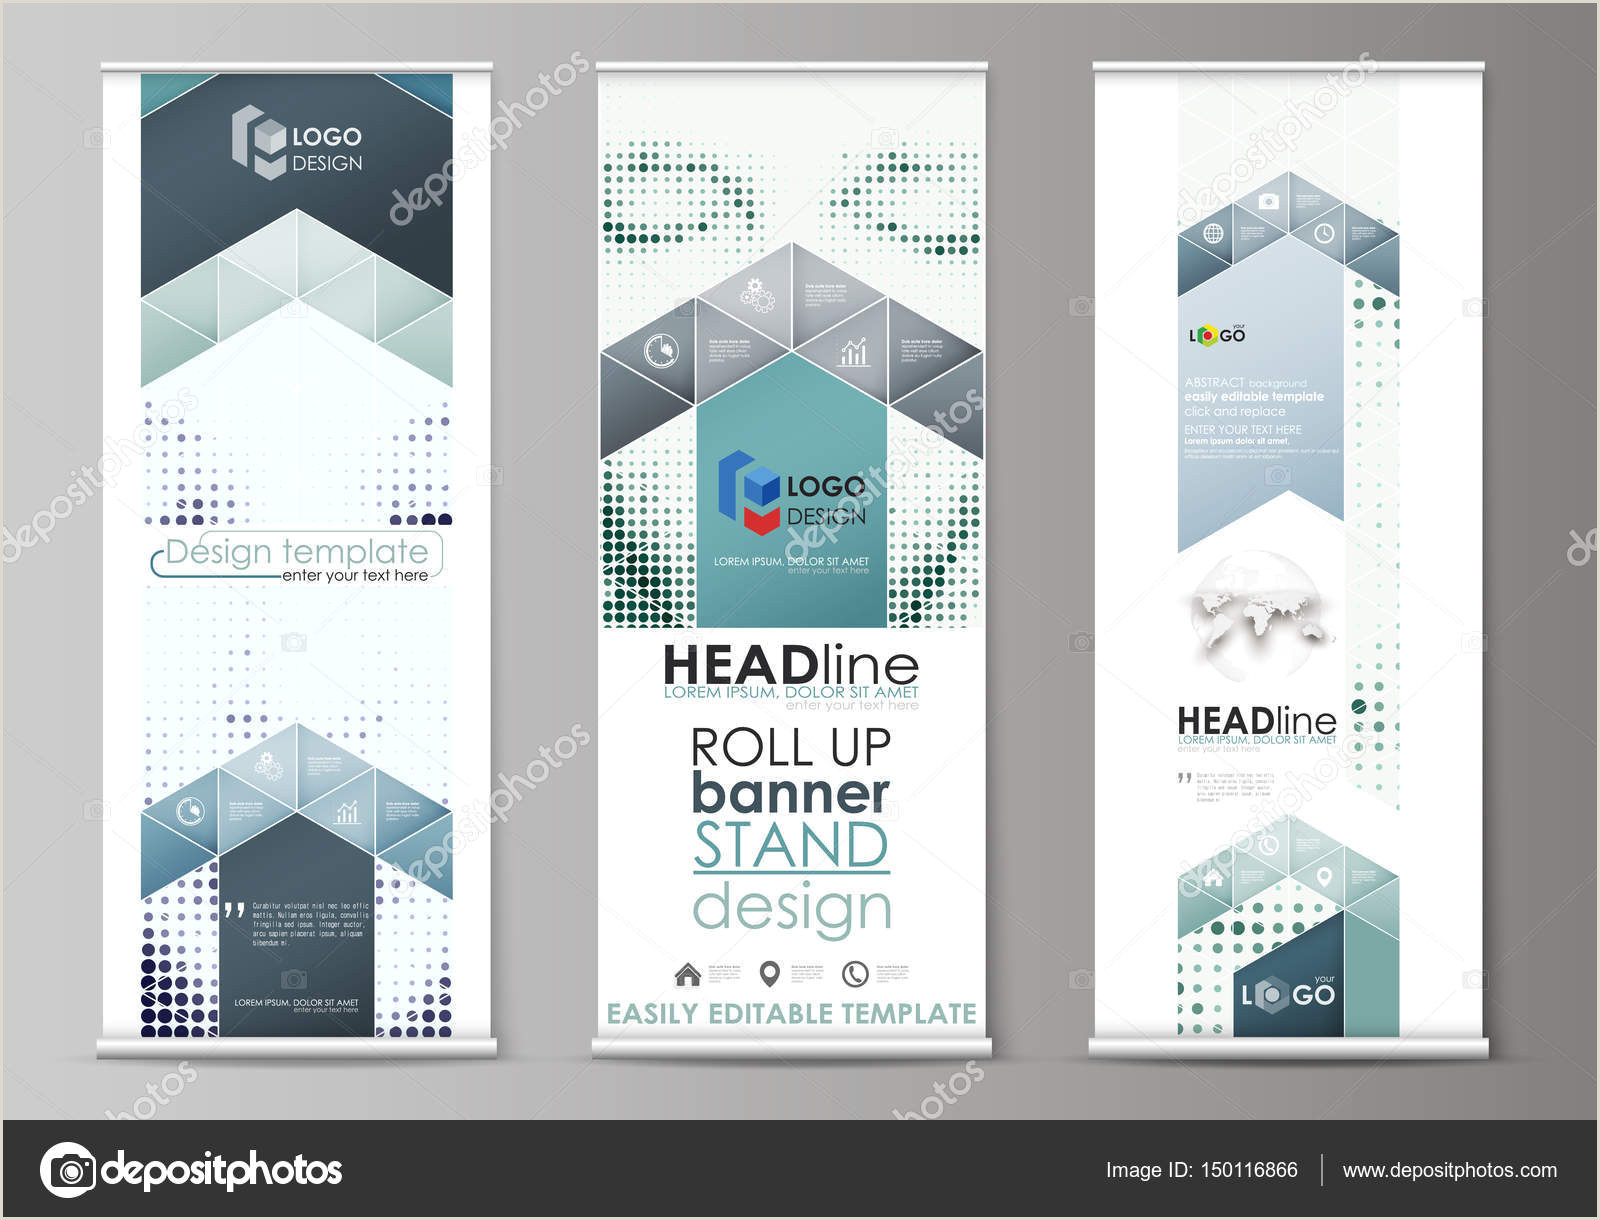 How To Make A Horizontal Banner Stand Roll Up Banner Stands Flat Design Templates Geometric Style Vertical Vector Flyers Flag Layouts Halftone Dotted Background Retro Style Pattern